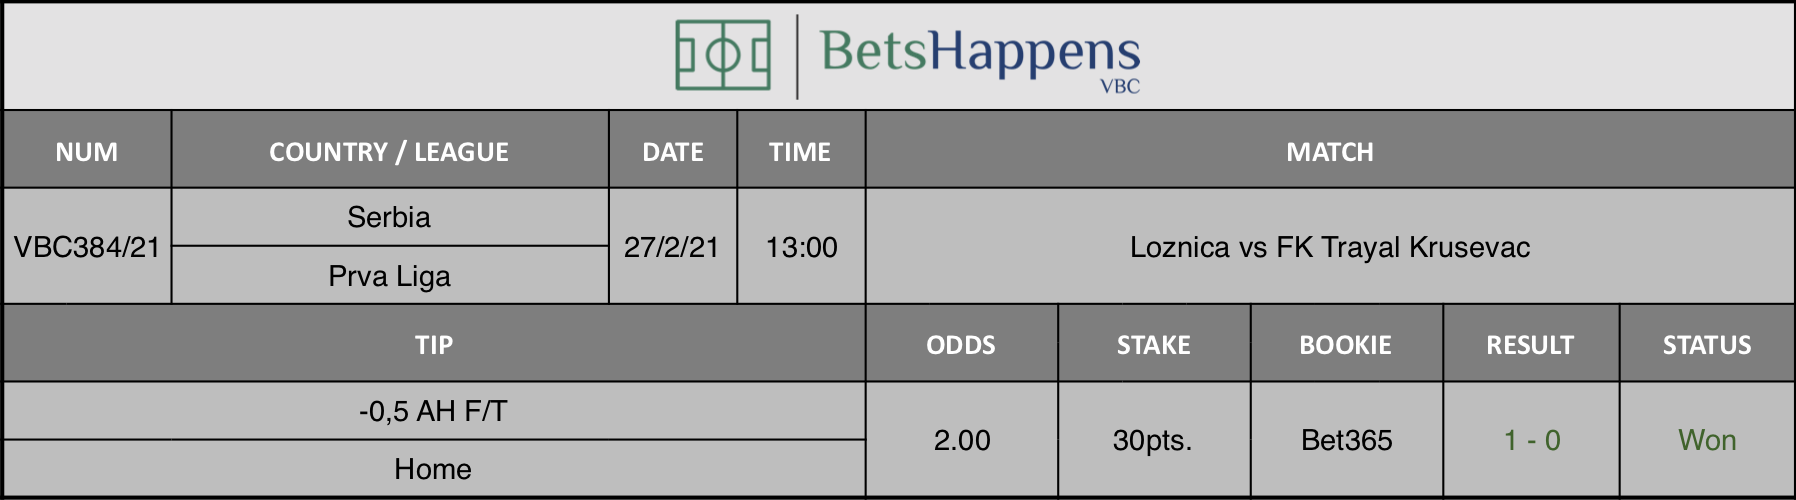 Results of our tip for the Loznica vs FK Trayal Krusevac match where -0,5 AH F/T Home is recommended.